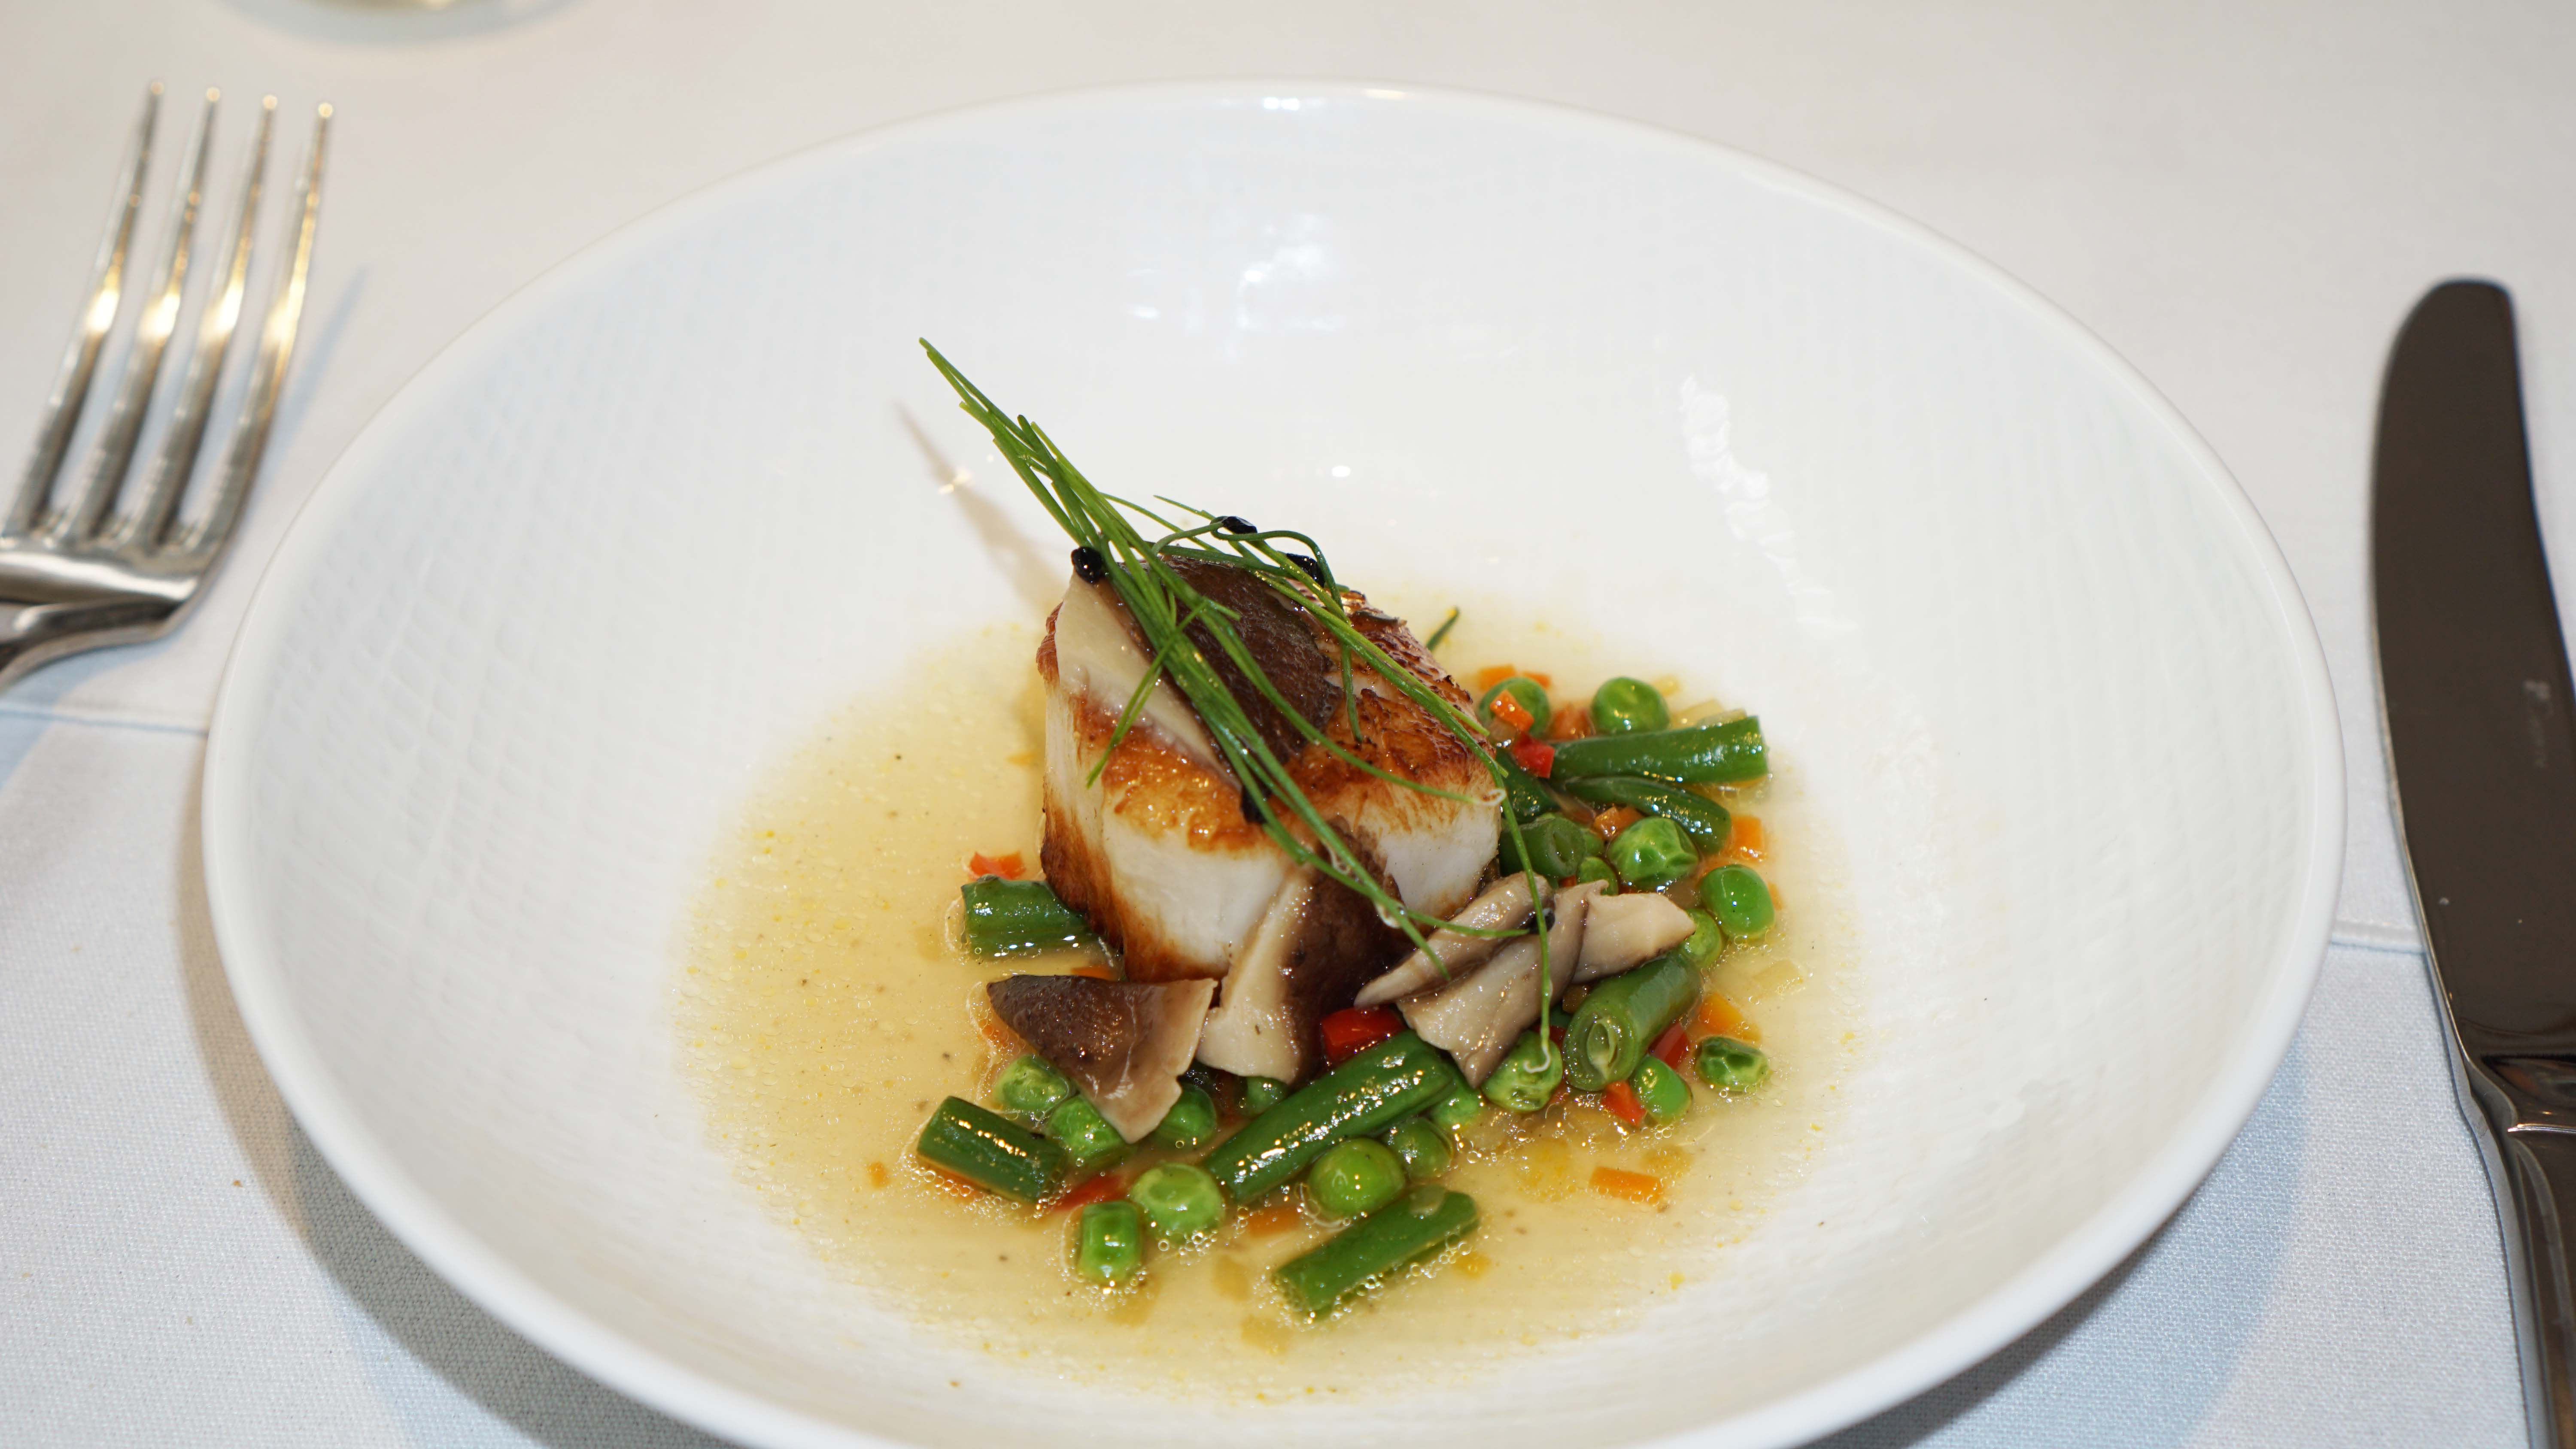 Beaubourg scallop